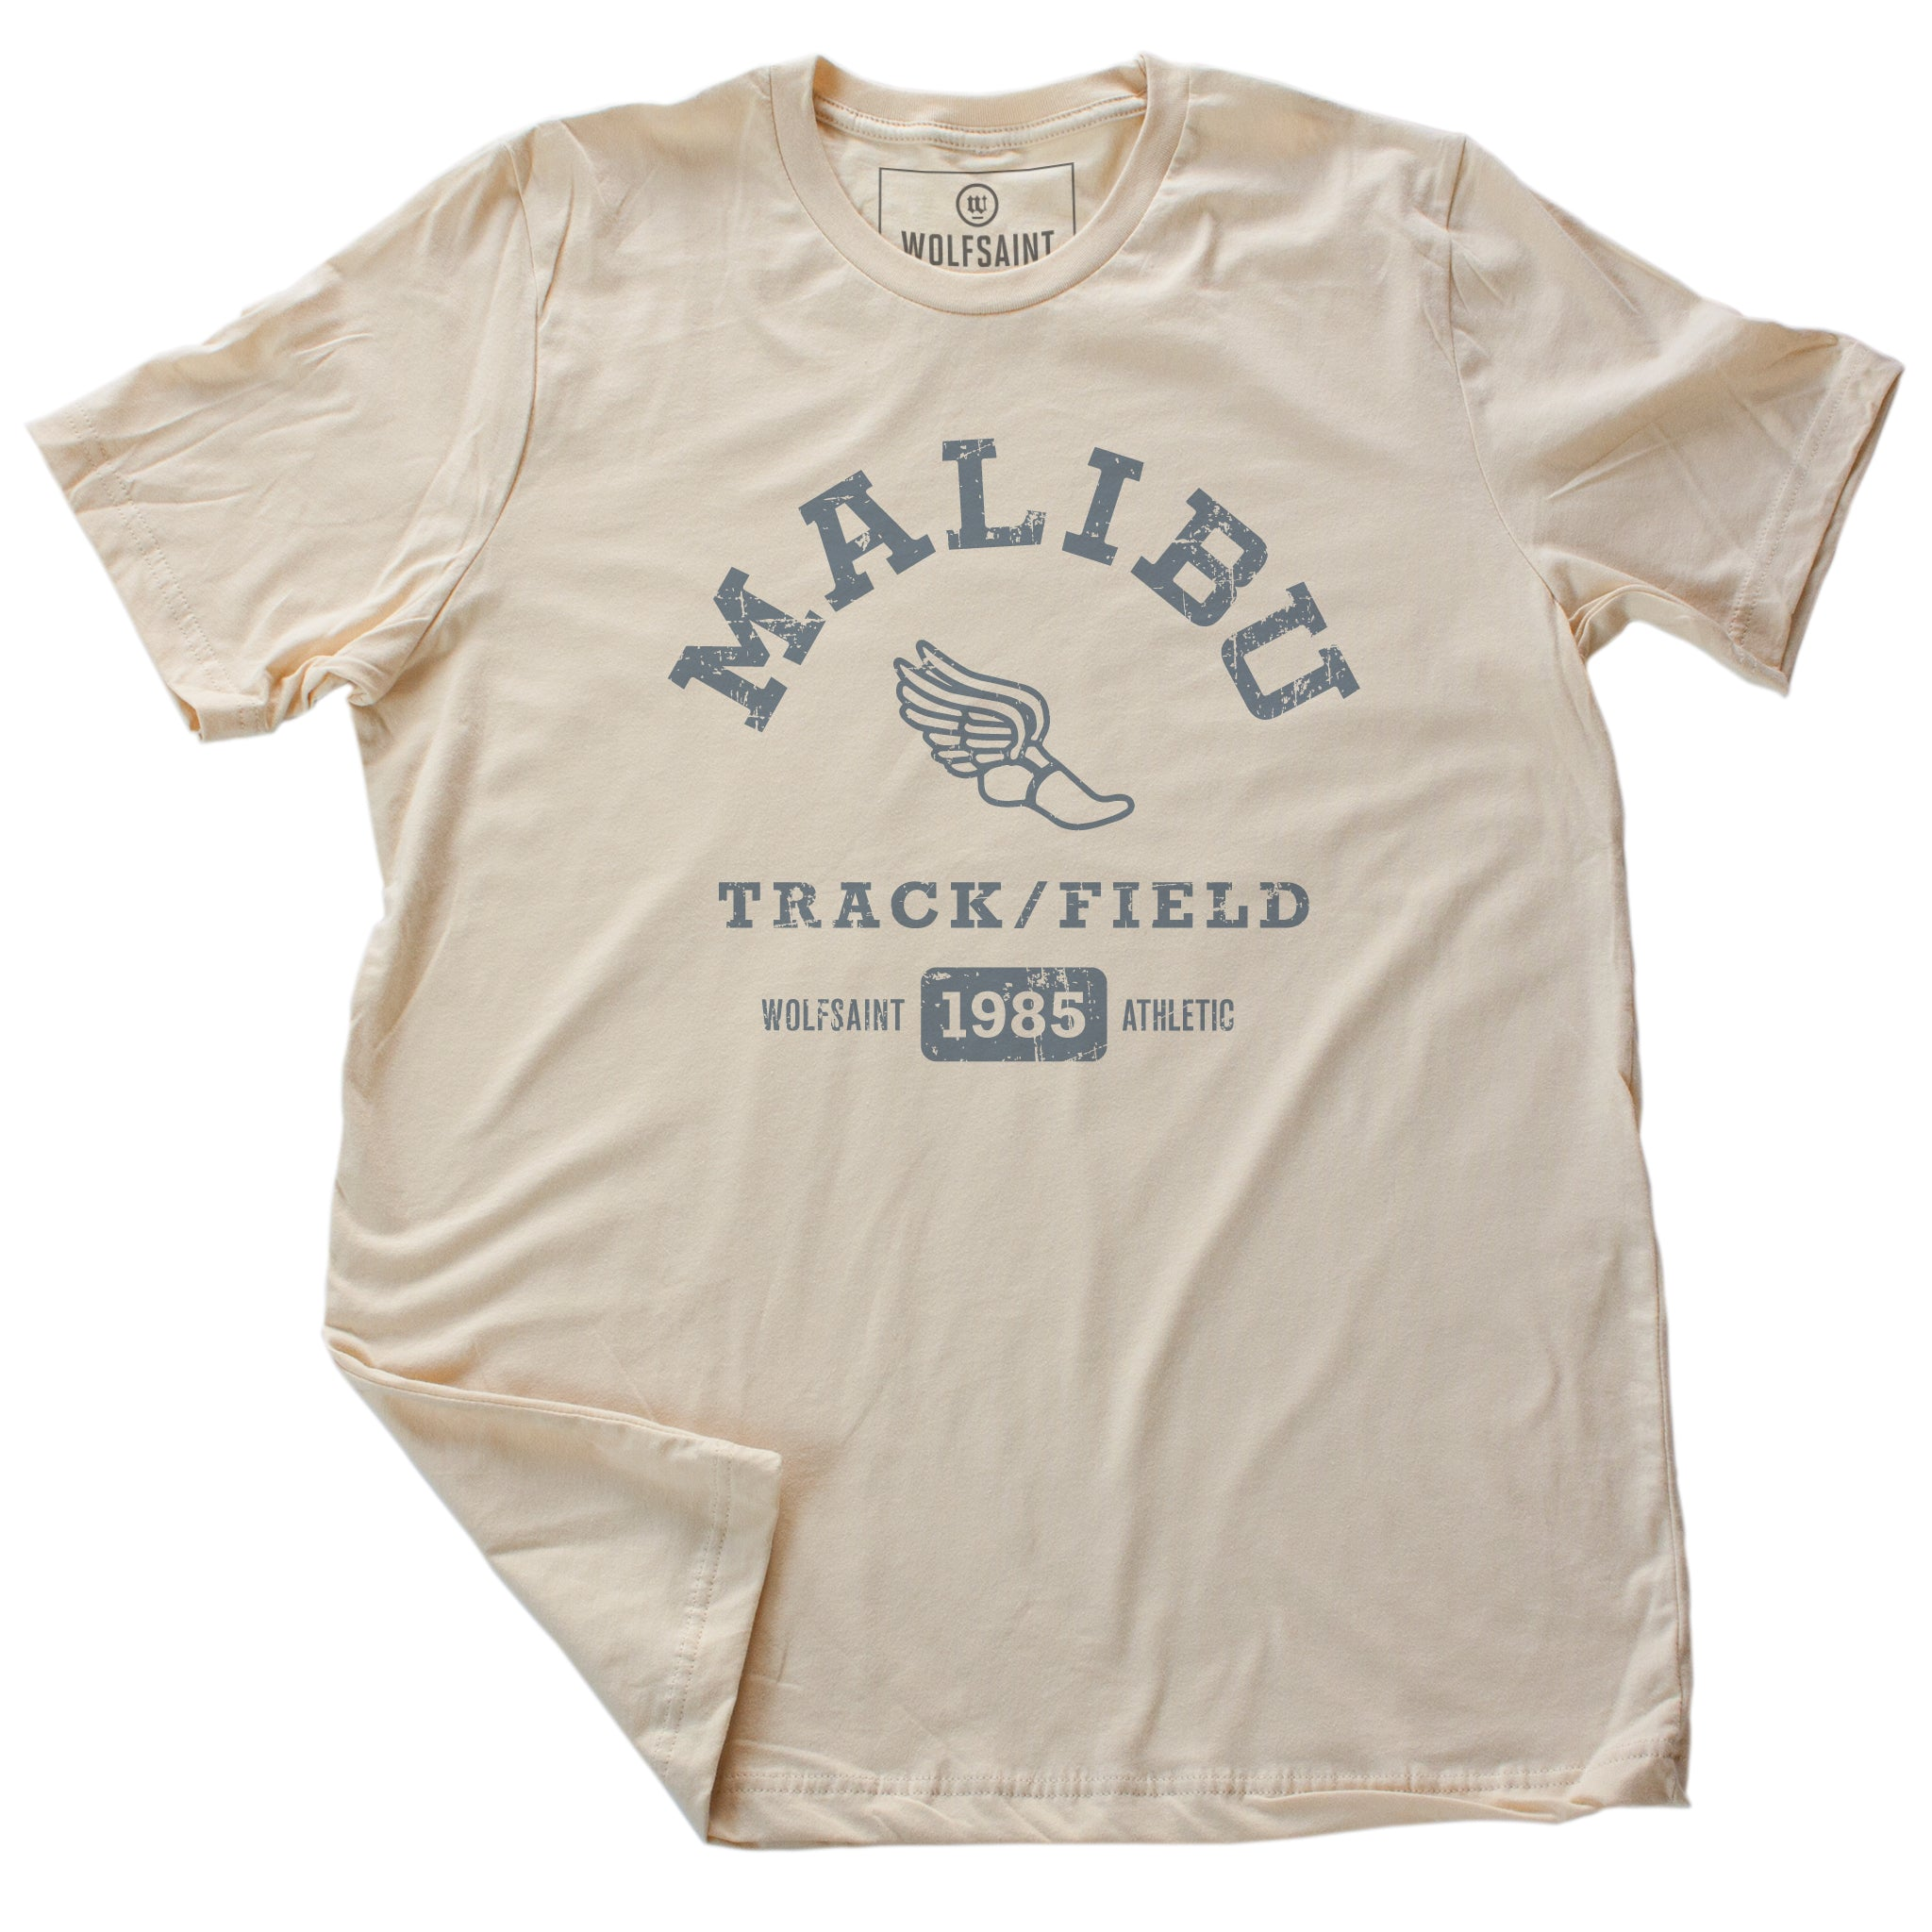 A fashionable, vintage-inspired retro t-shirt in Classic Vintage Soft Cream, featuring a graphic representing a sarcastic and fictitious Malibu (California) Track and Field team. From wolfsaint.net